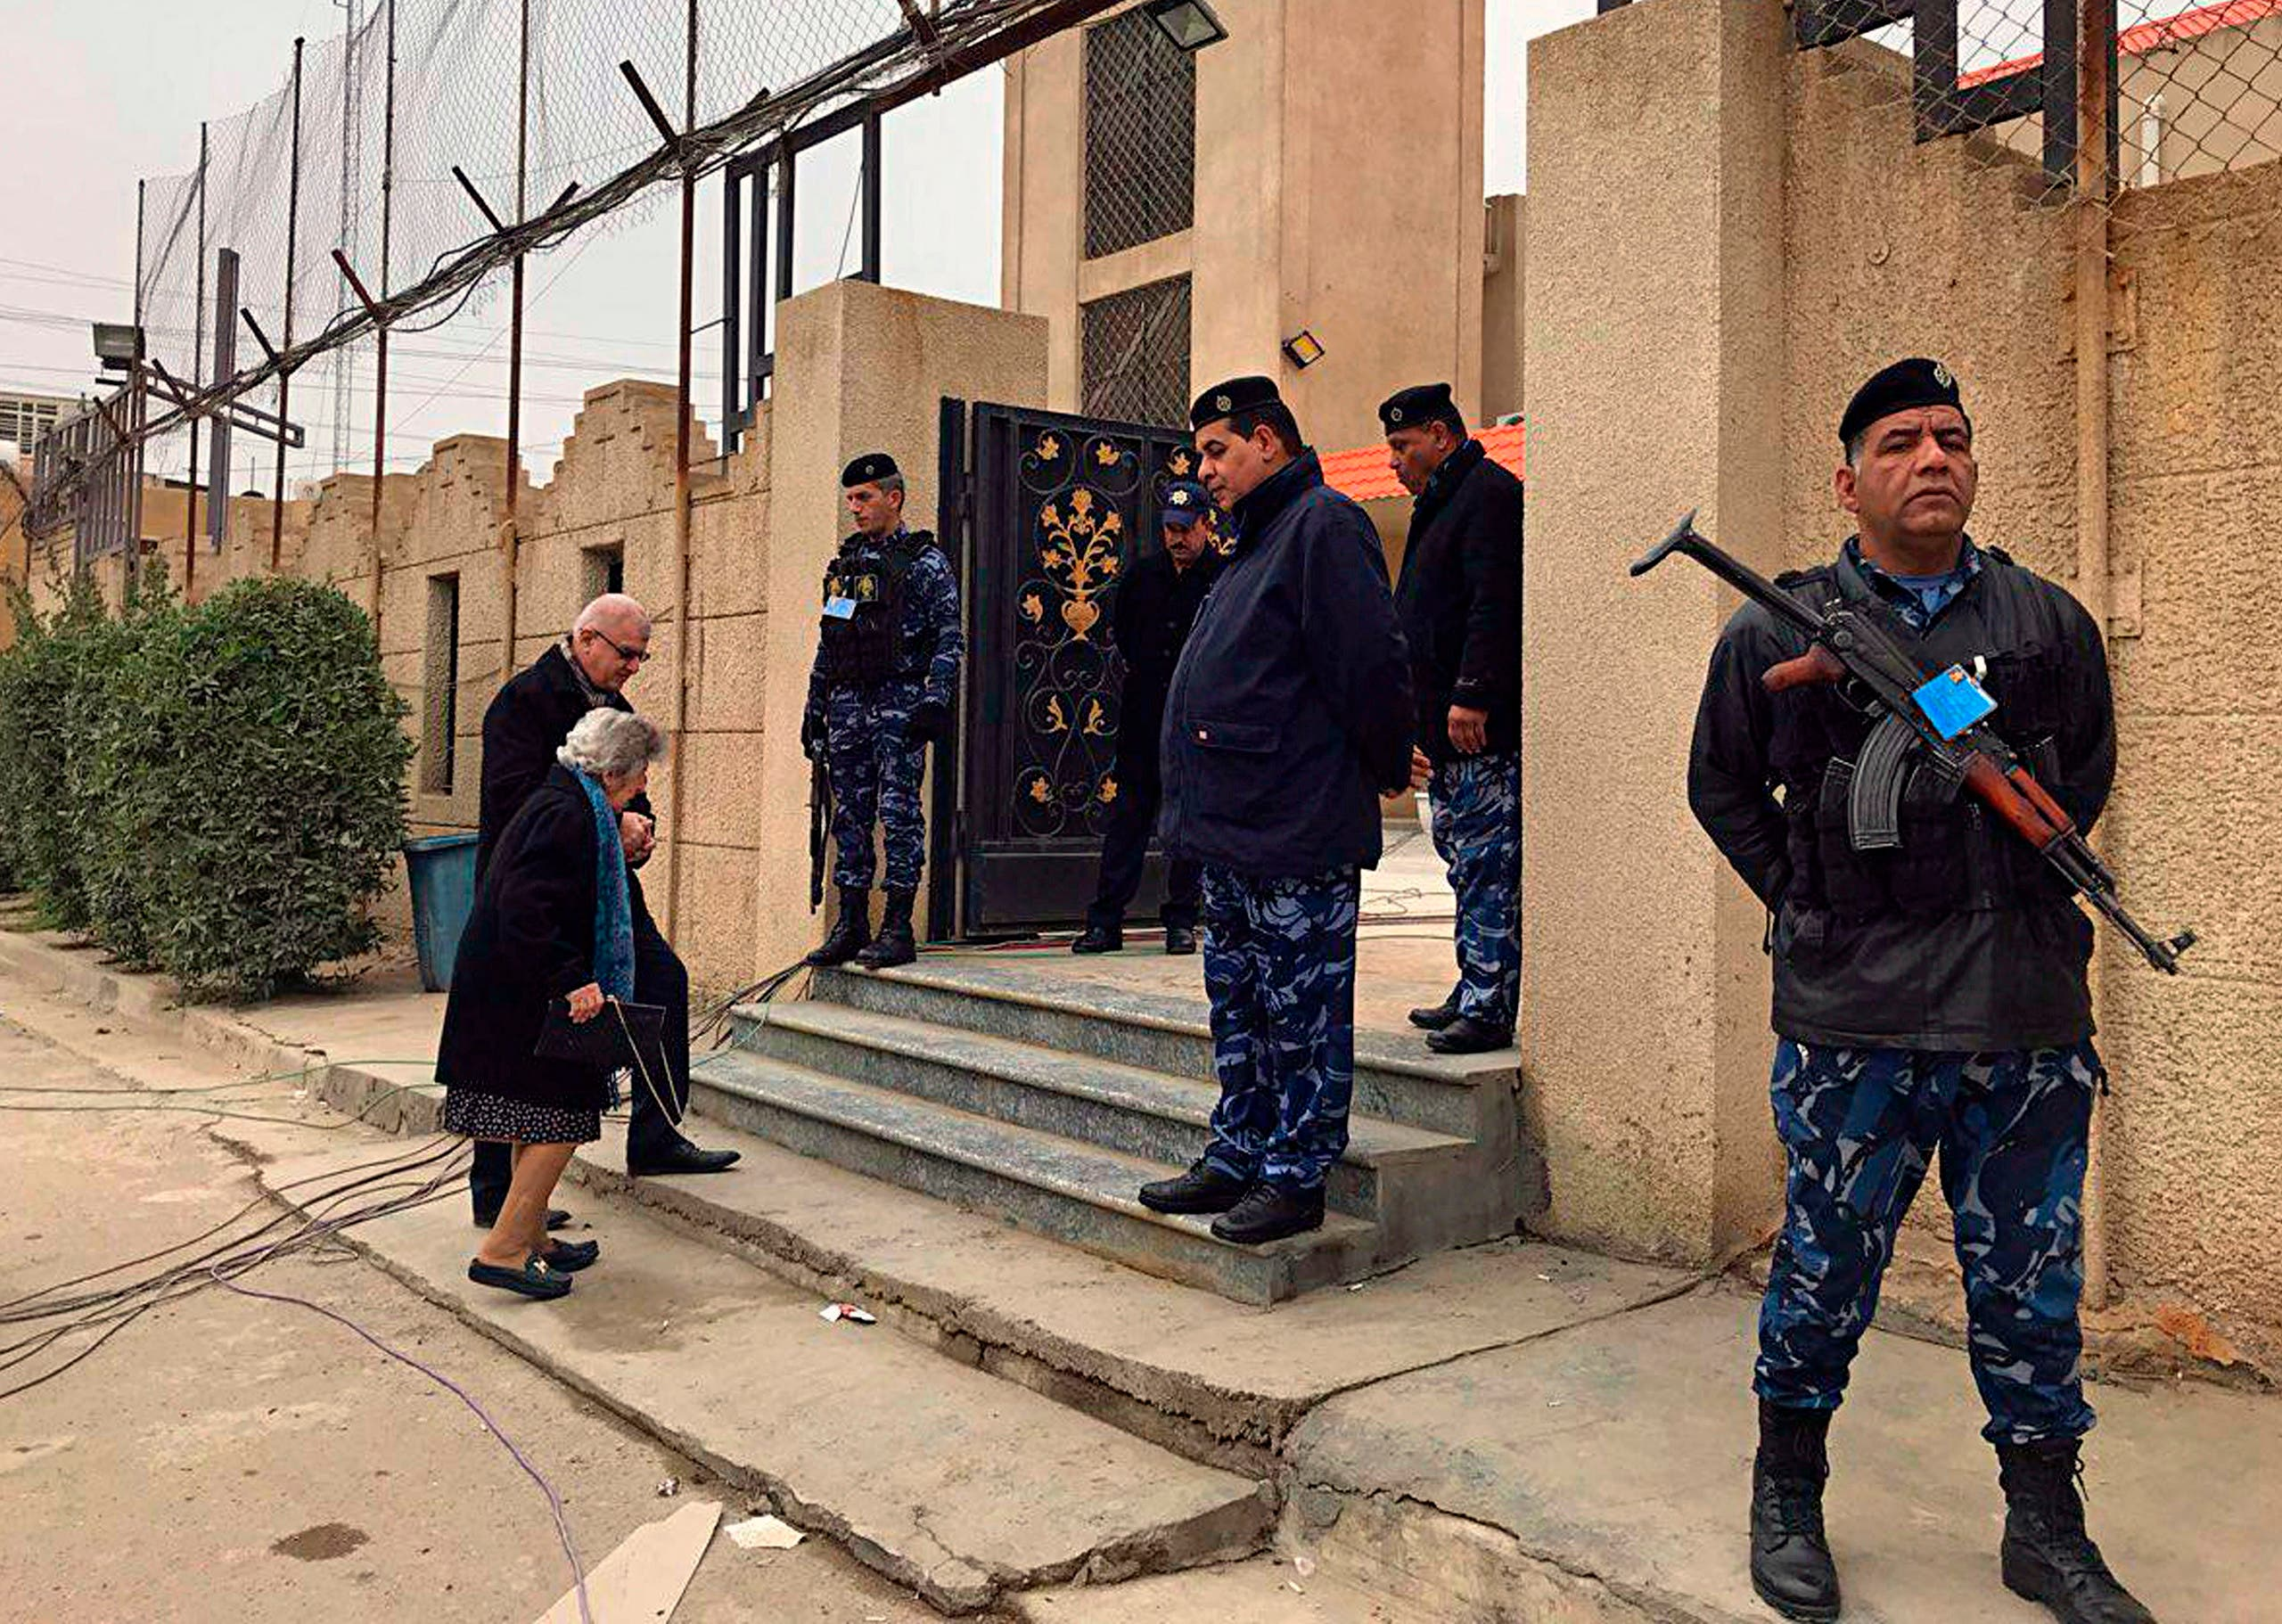 Security forces stand guard before Christmas Mass outside Mar Youssif Chaldean Church in Baghdad, Iraq on Dec. 25, 2018. (AP)